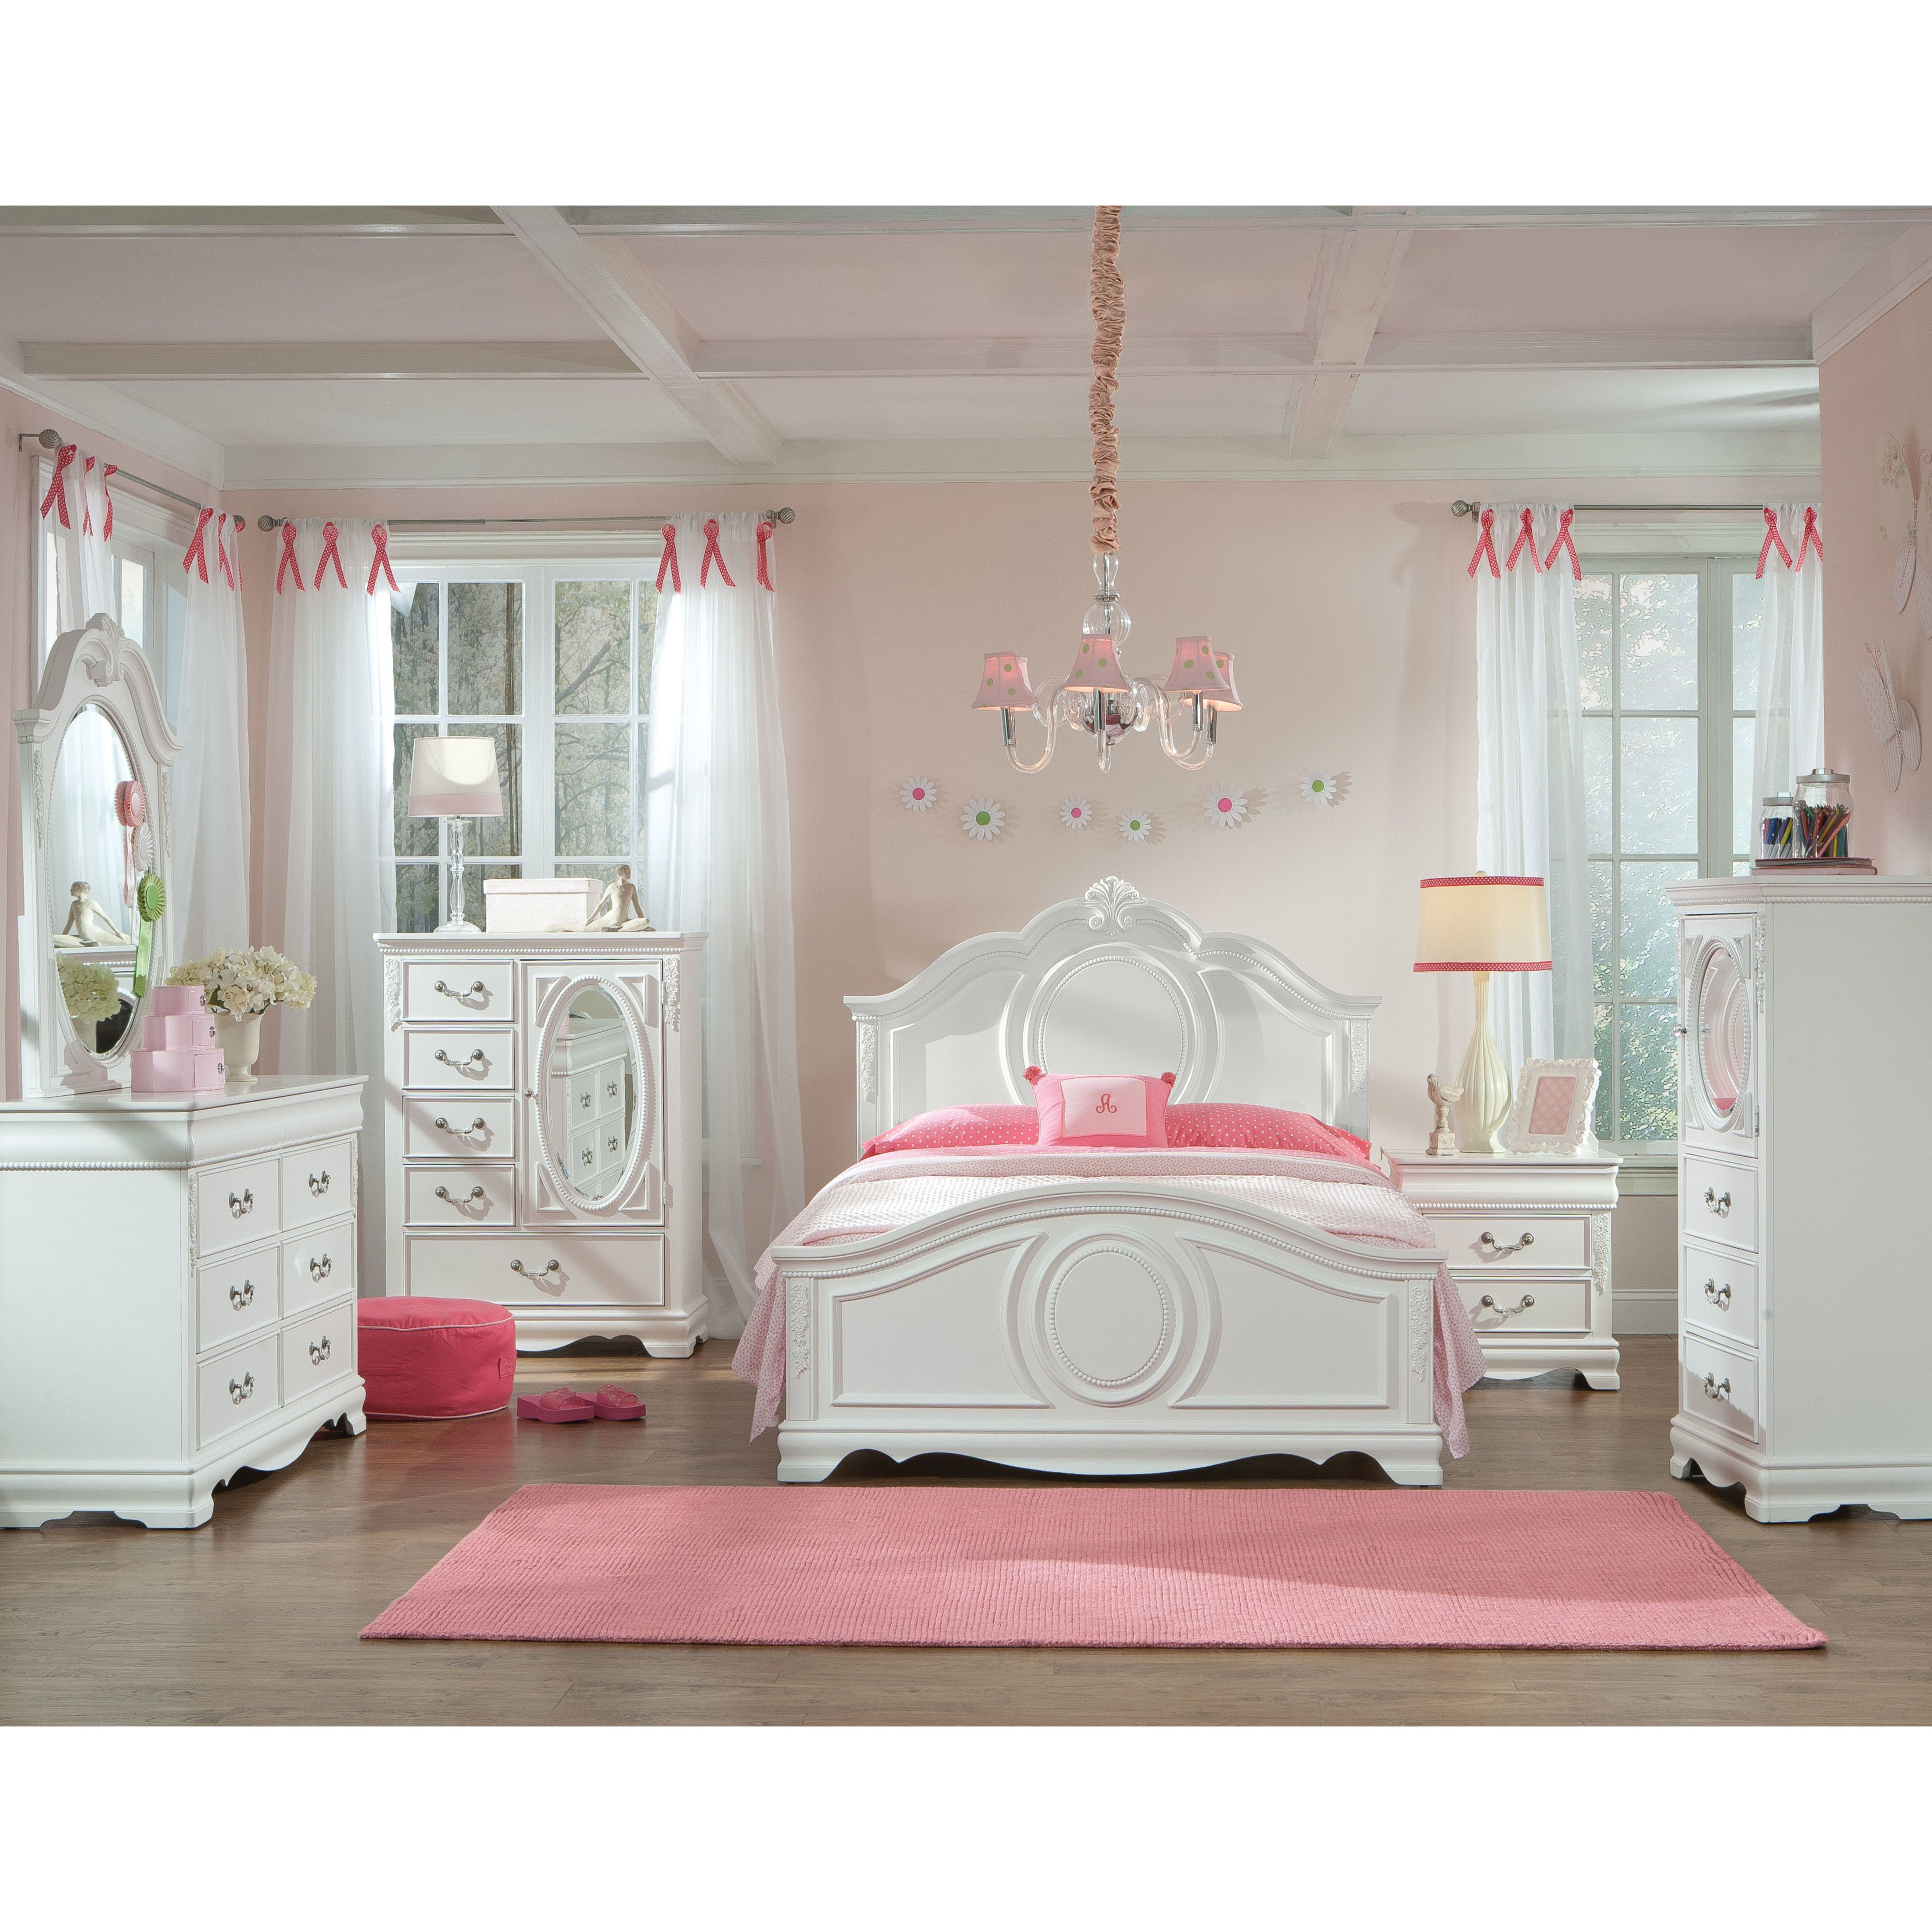 furniture stunning lovely beautiful ideas girls little bedroom toddler of for girl sets wall